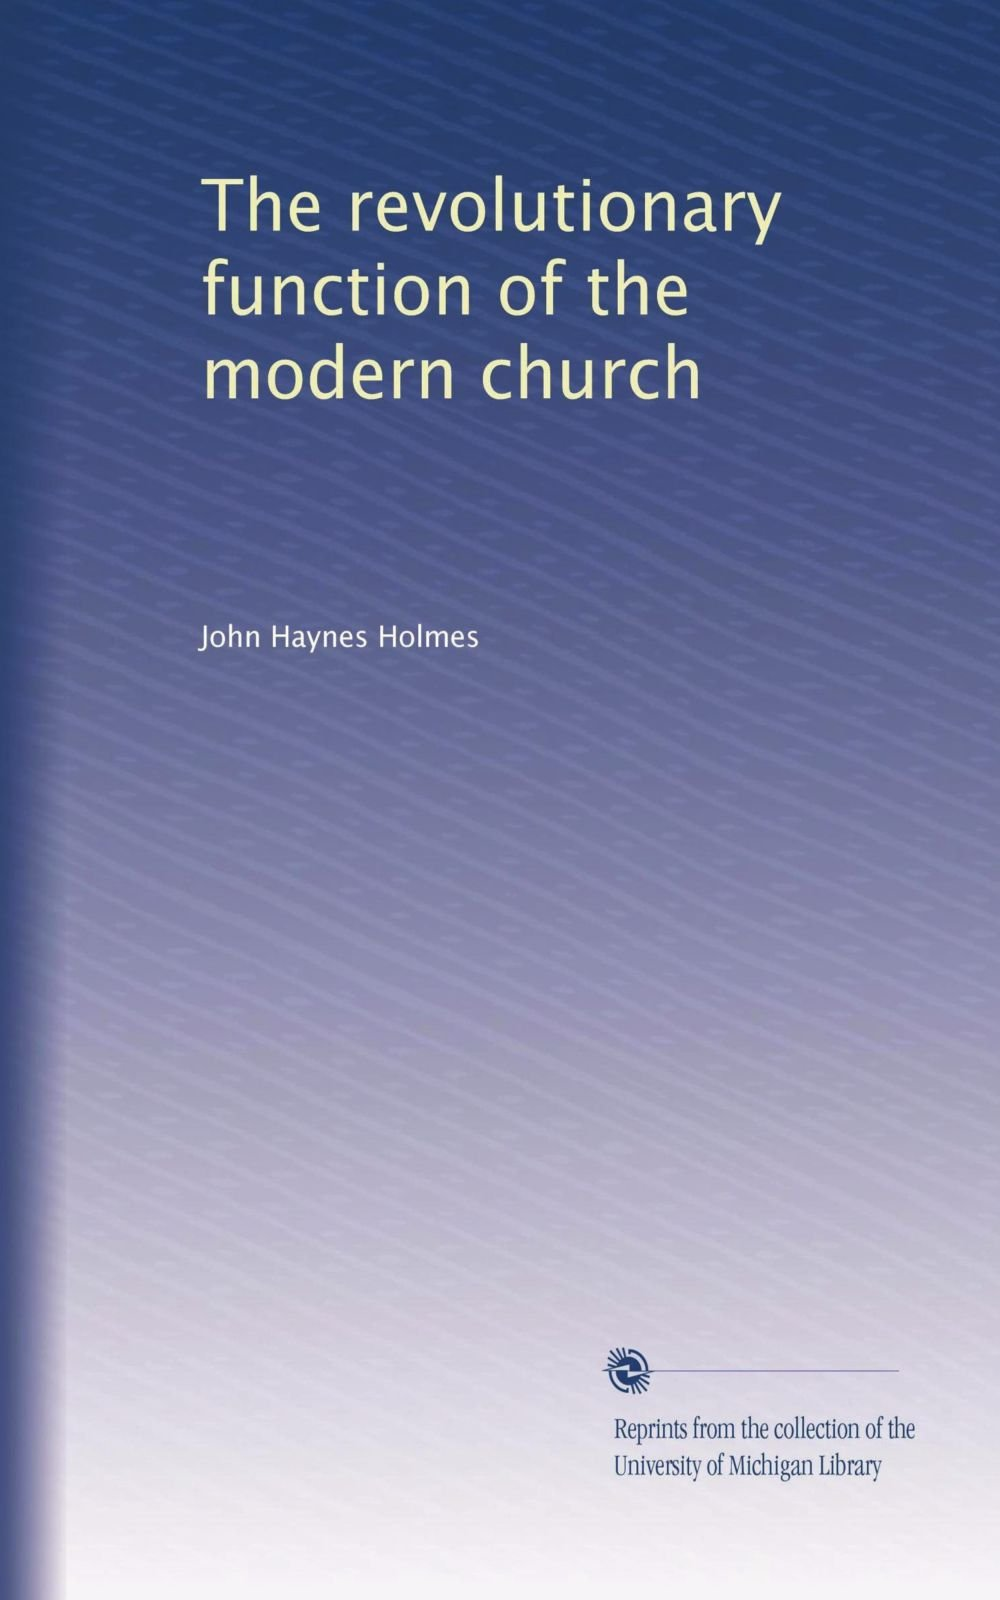 Download The revolutionary function of the modern church PDF